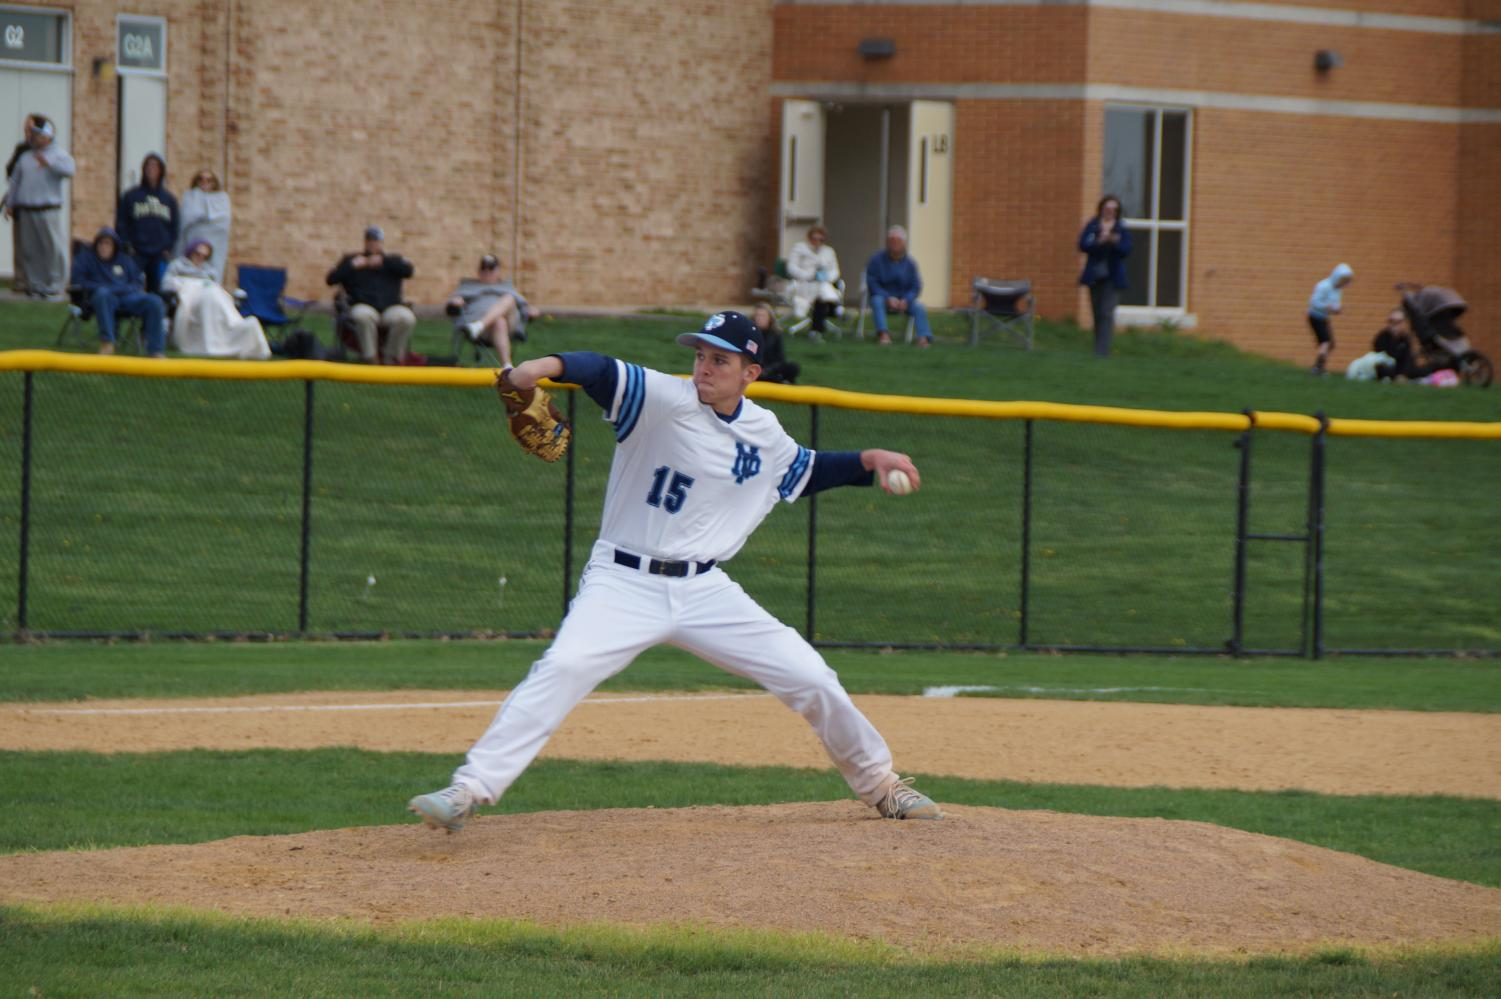 Joe Valenti on the mound for his complete game win.